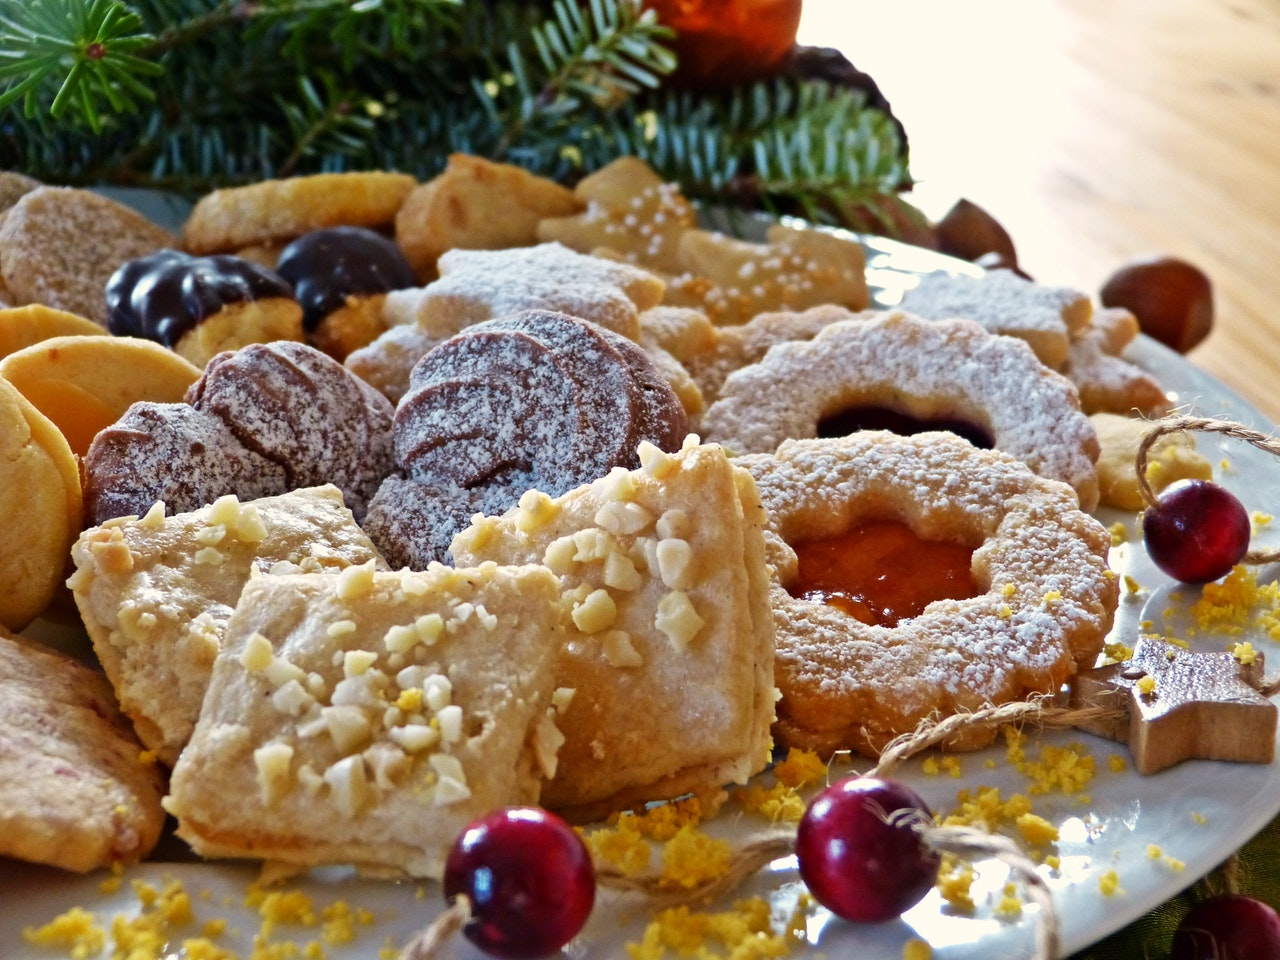 Women's Society Cookie Packing – Dec. 10, 2:00-4:00pm